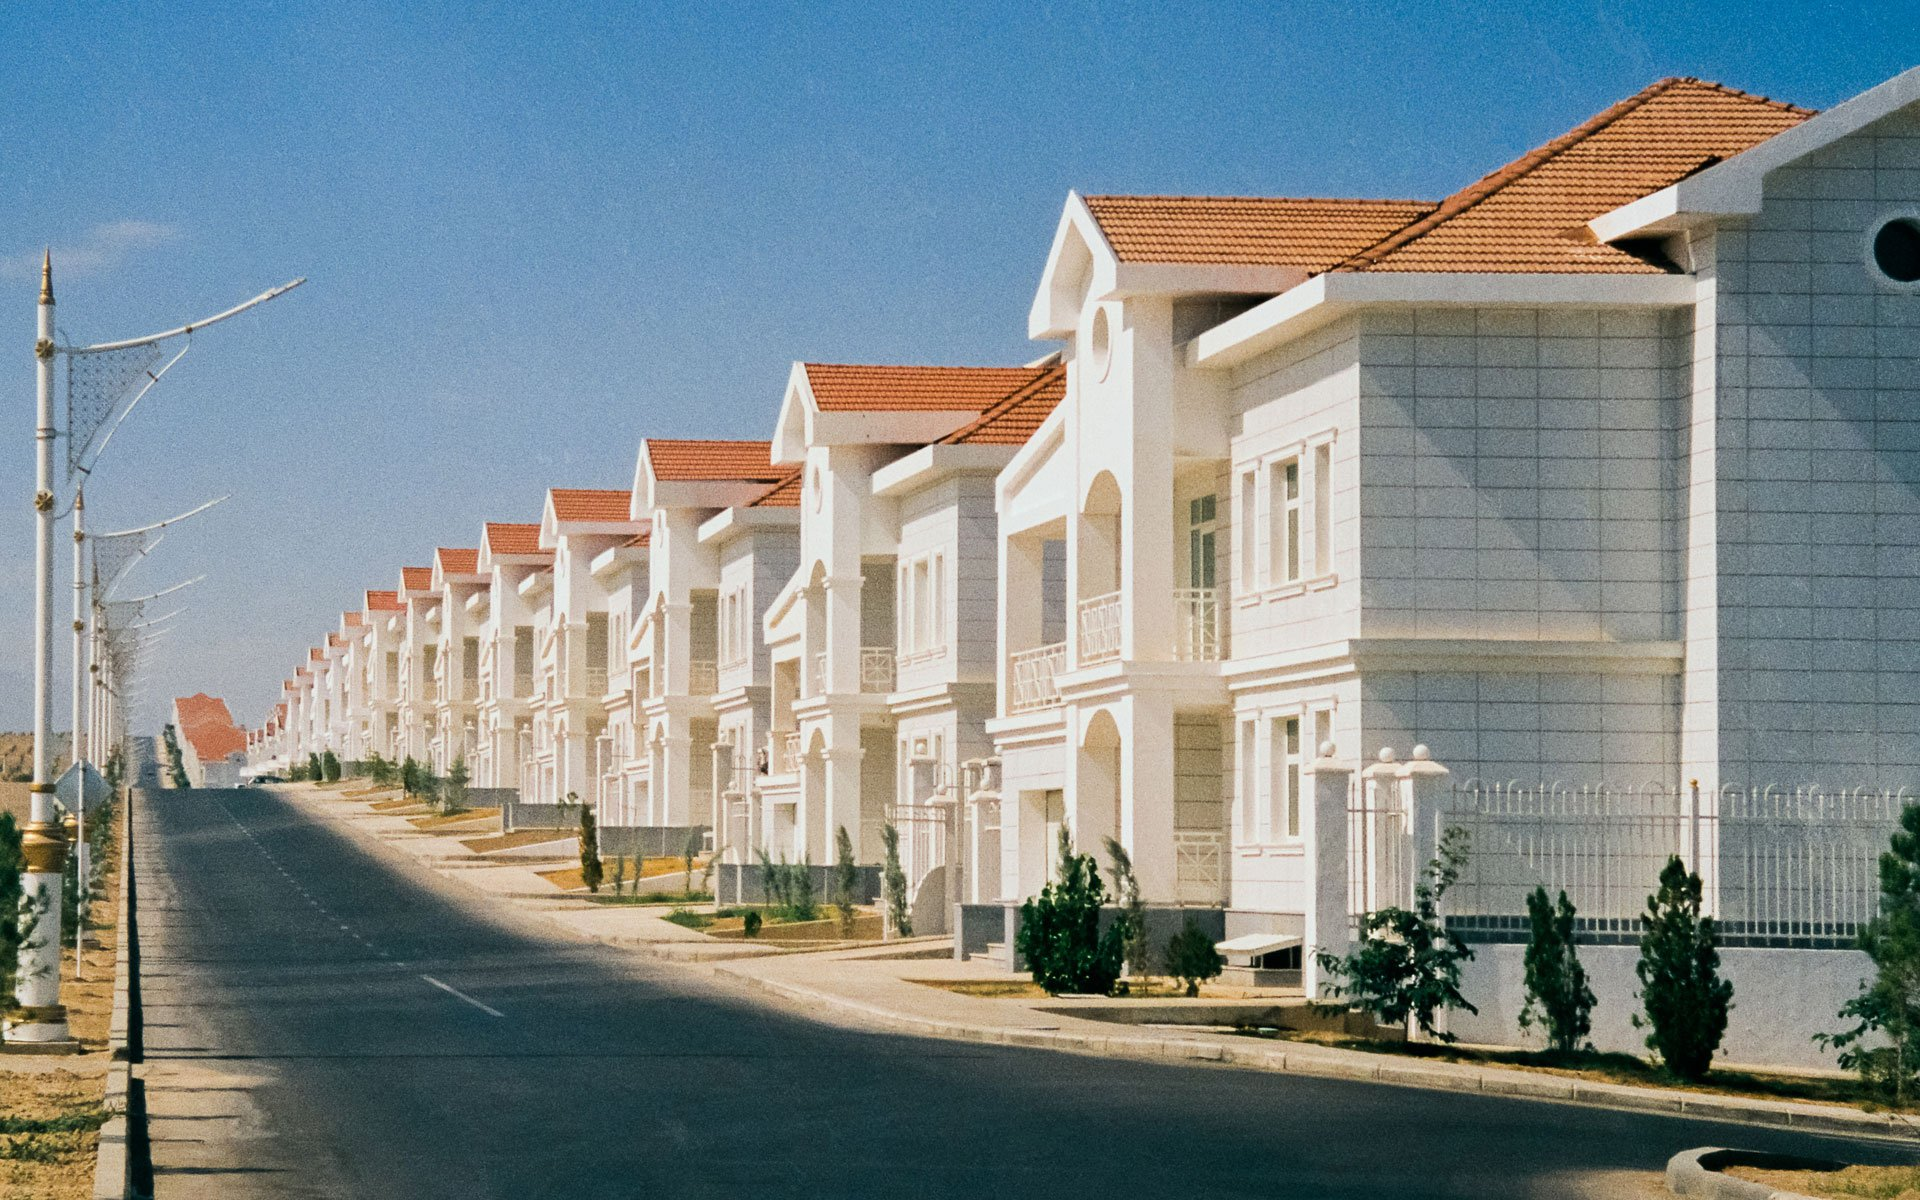 Inside the idyllic but deserted 'American' suburb on the edge of Ashgabat